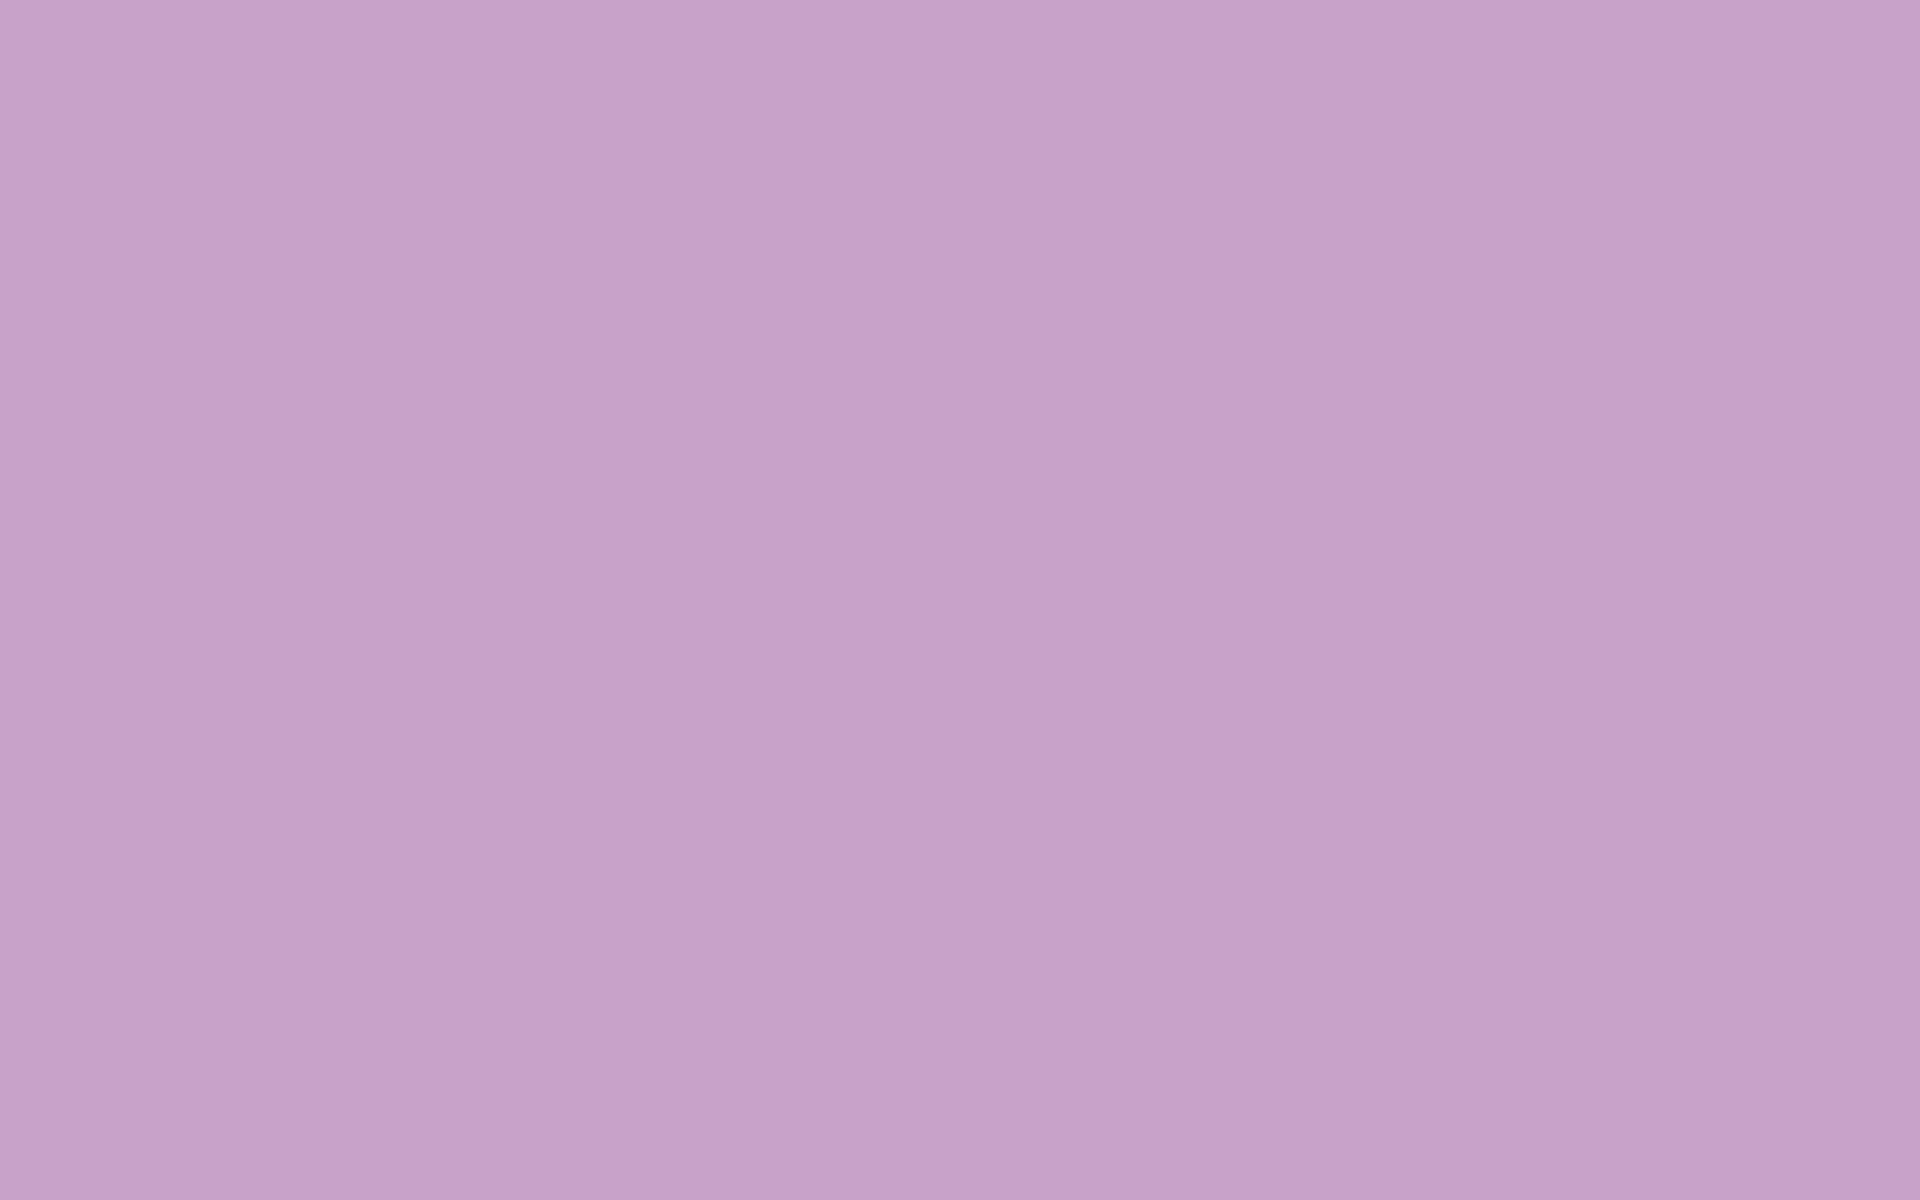 1920x1200 Lilac Solid Color Background